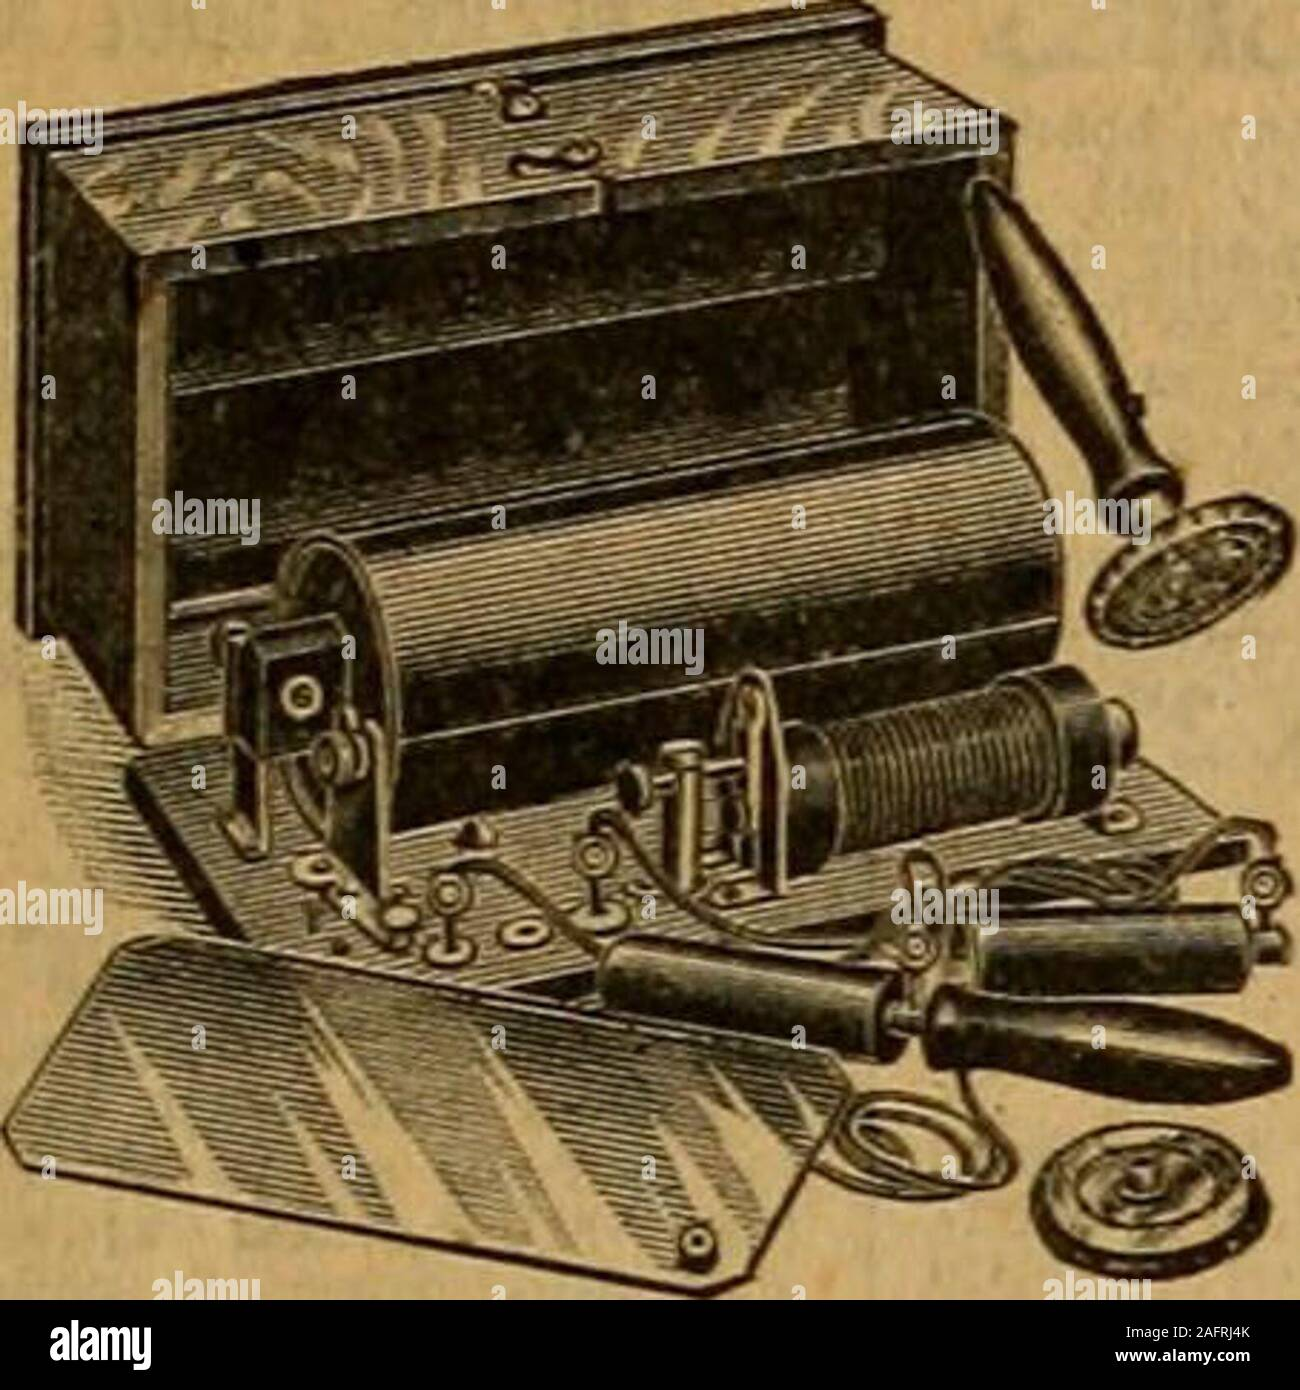 . Catalogue no. 16, spring/summer / R. H. Macy & Co.. Farradic current more and moree^ery day, and our Home Electrical andMedical Apparatus is desigried to provide asafe and simple as well as effective meansof administering this health-giving current;at home, and without any previous knowl-edge of electricity. There are no liquids oracids to confuse, and there is no dangerwhatever in its use. The currents aresmooth and even and can be regulated froman almost imperceptible current, to one thatfew can withstand. The outfit comprises a standard dry cell battery; twosponge electrodes with non-cond Stock Photo